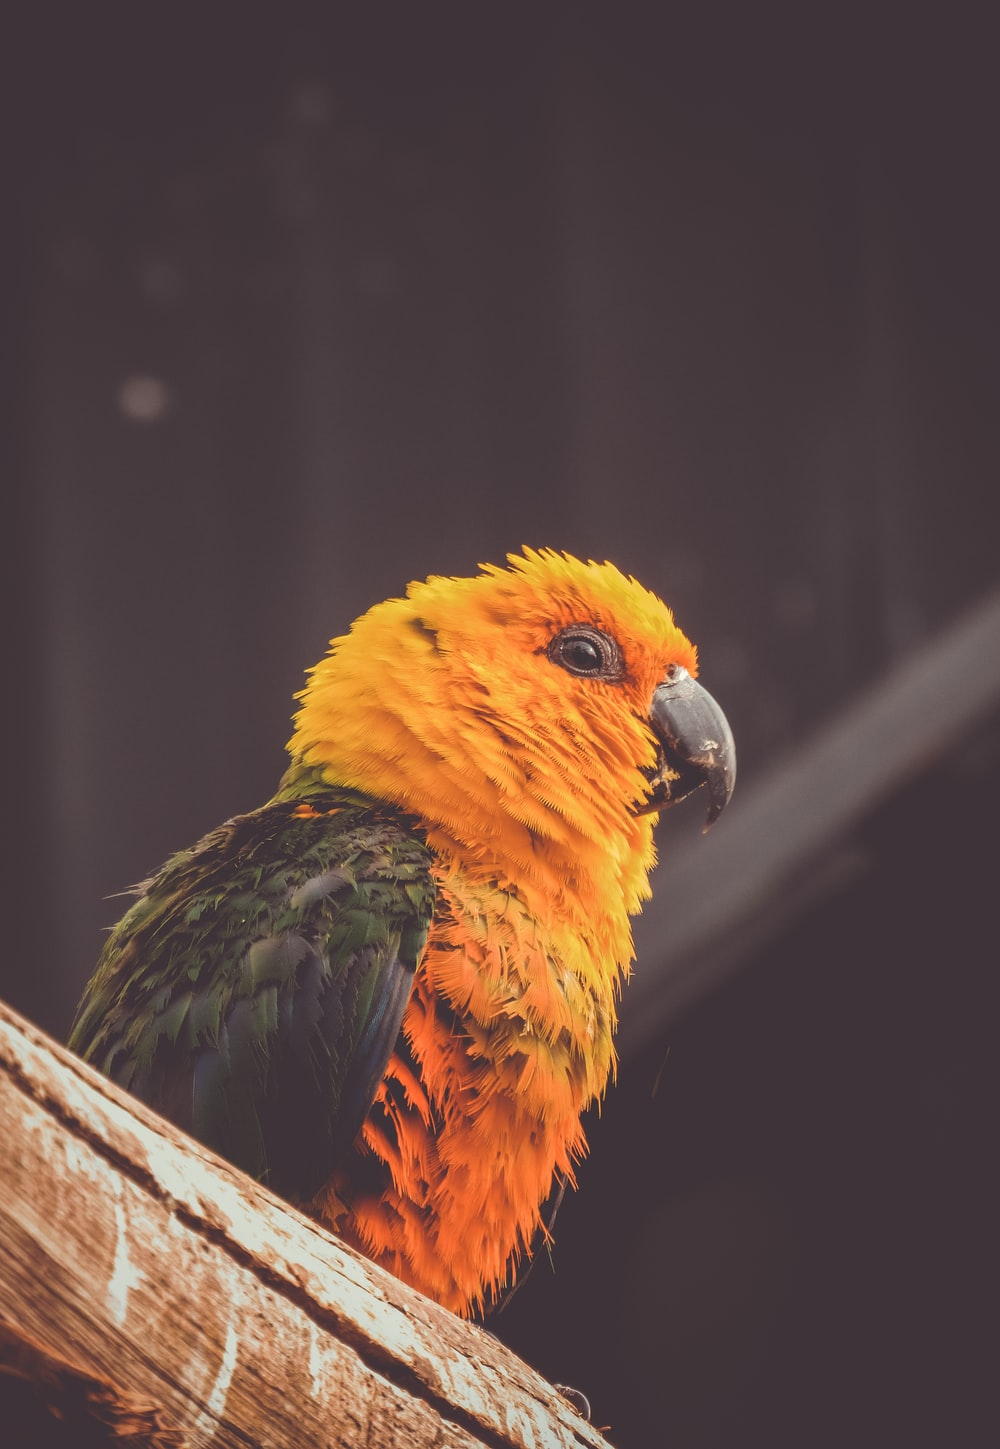 orange and green bird perch on brown tree branch close-up photography